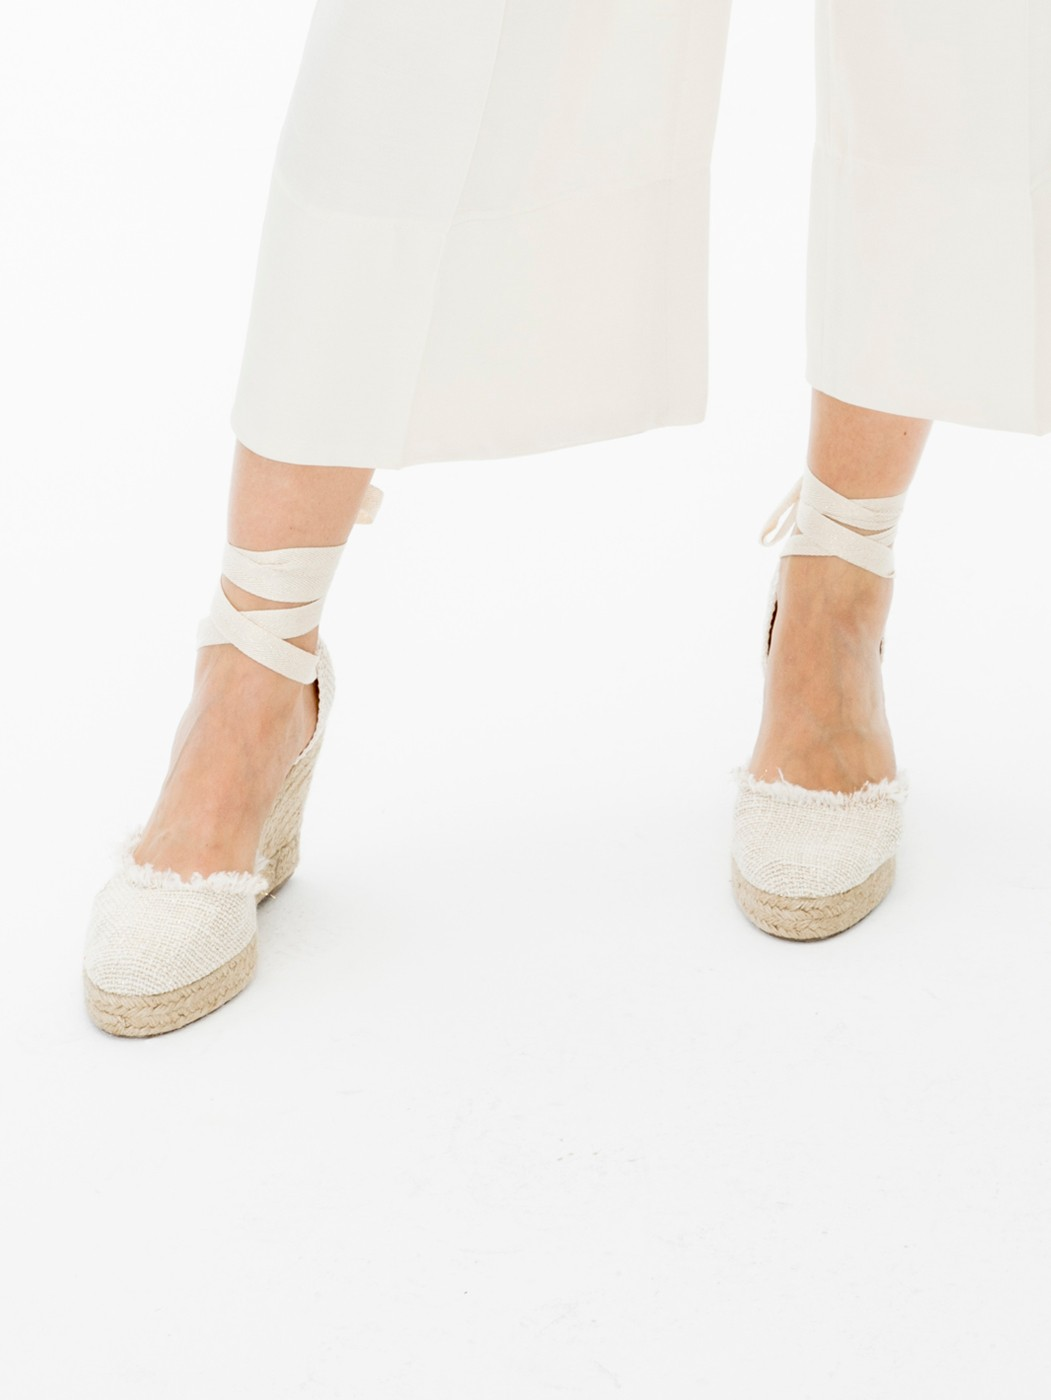 ELLE SHOES IN MADELAINE GOLD